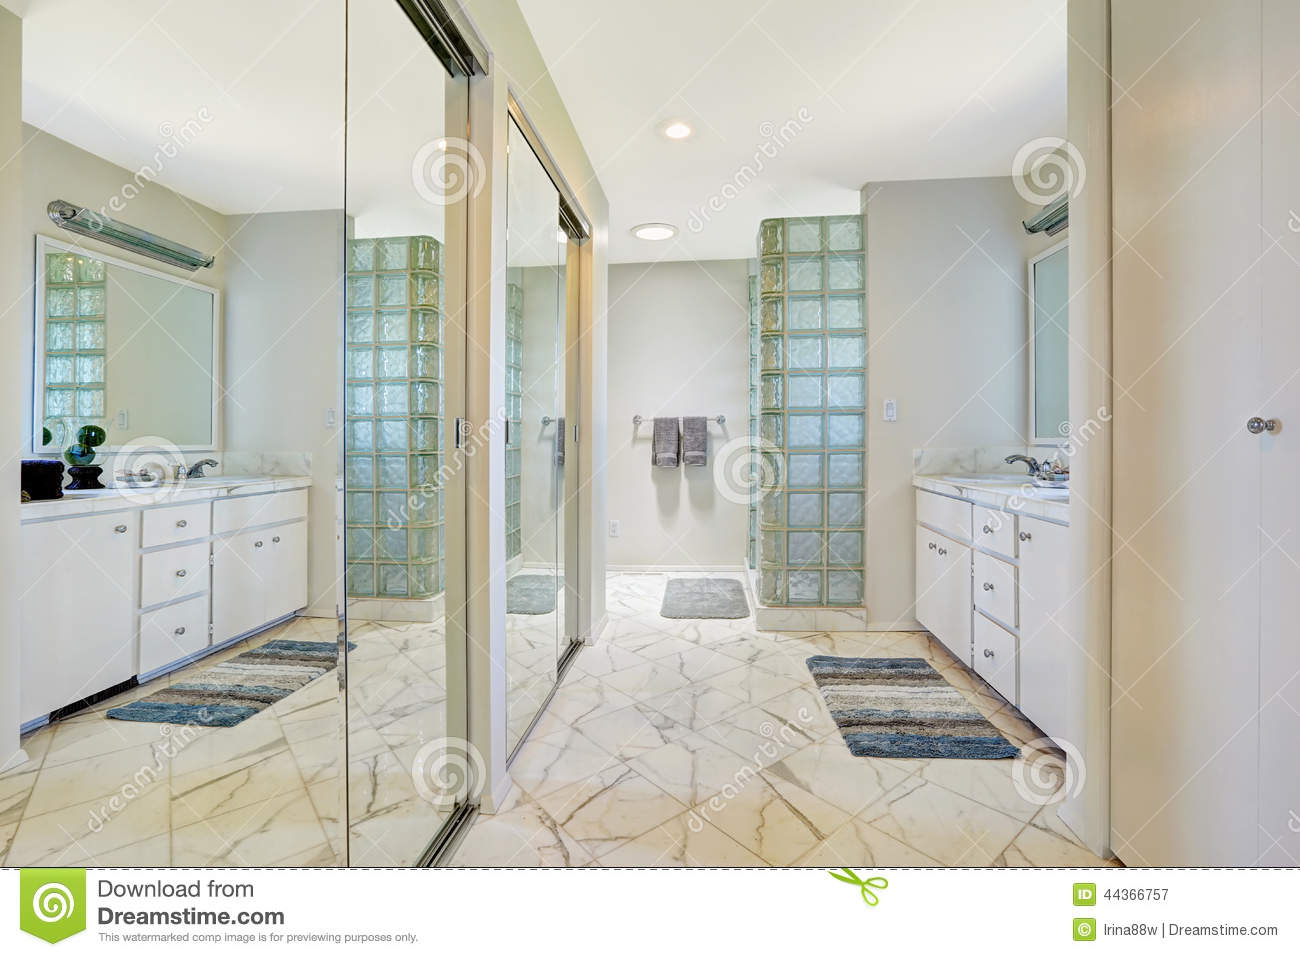 White Bathroom With Mirror Slide Doors Stock Image - Image of tile ...